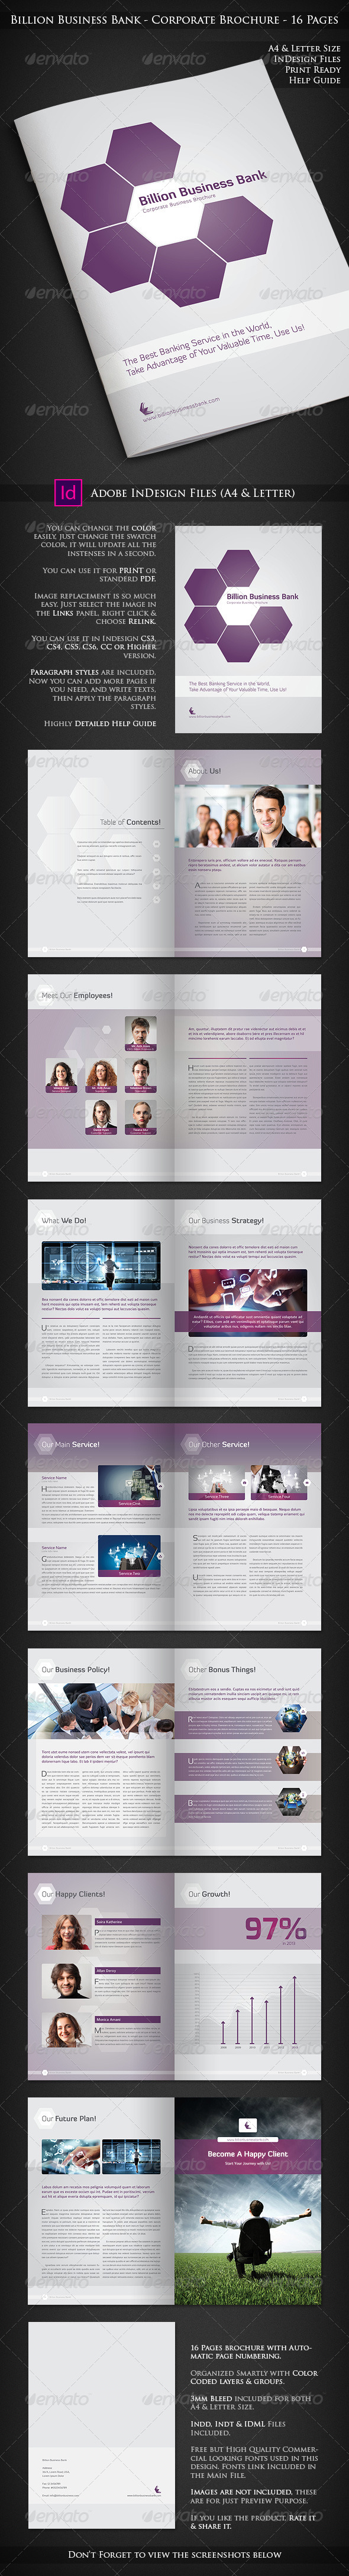 Billion Business Bank - 16 Pages Brochure - Corporate Brochures